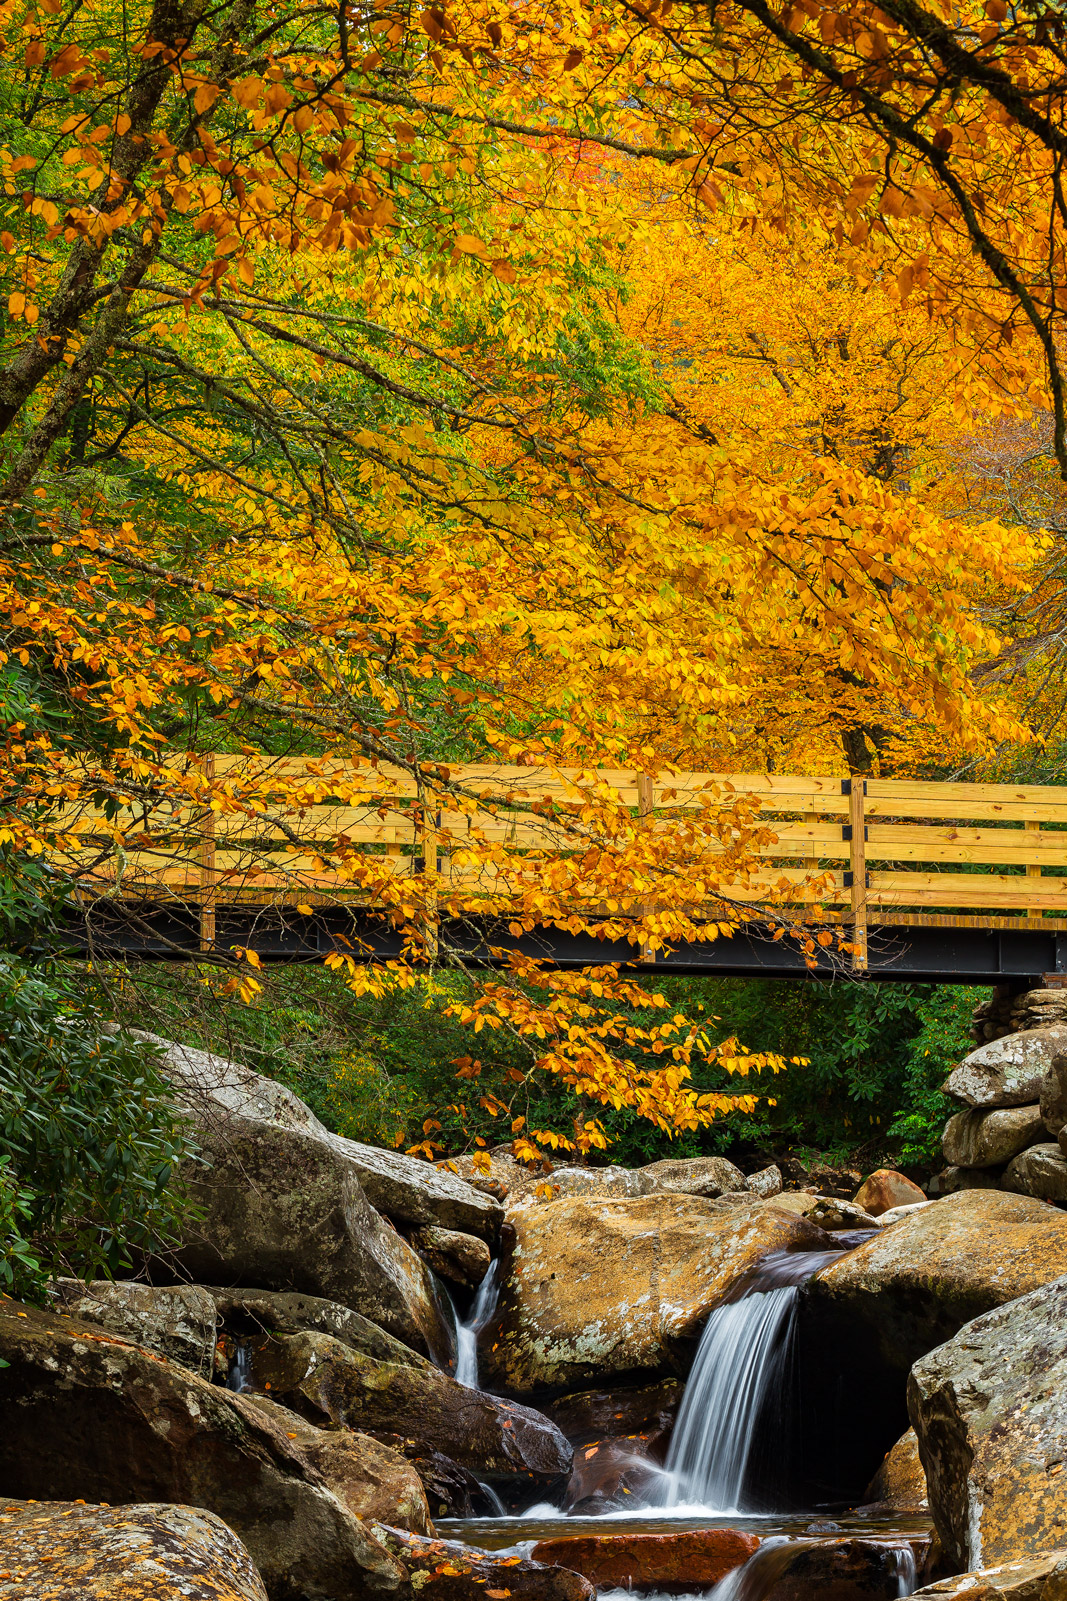 Tennessee, Smoky Mountains, Fall, Color, Bridge, River, limited edition, photograph, fine art, landscape, fall color, photo